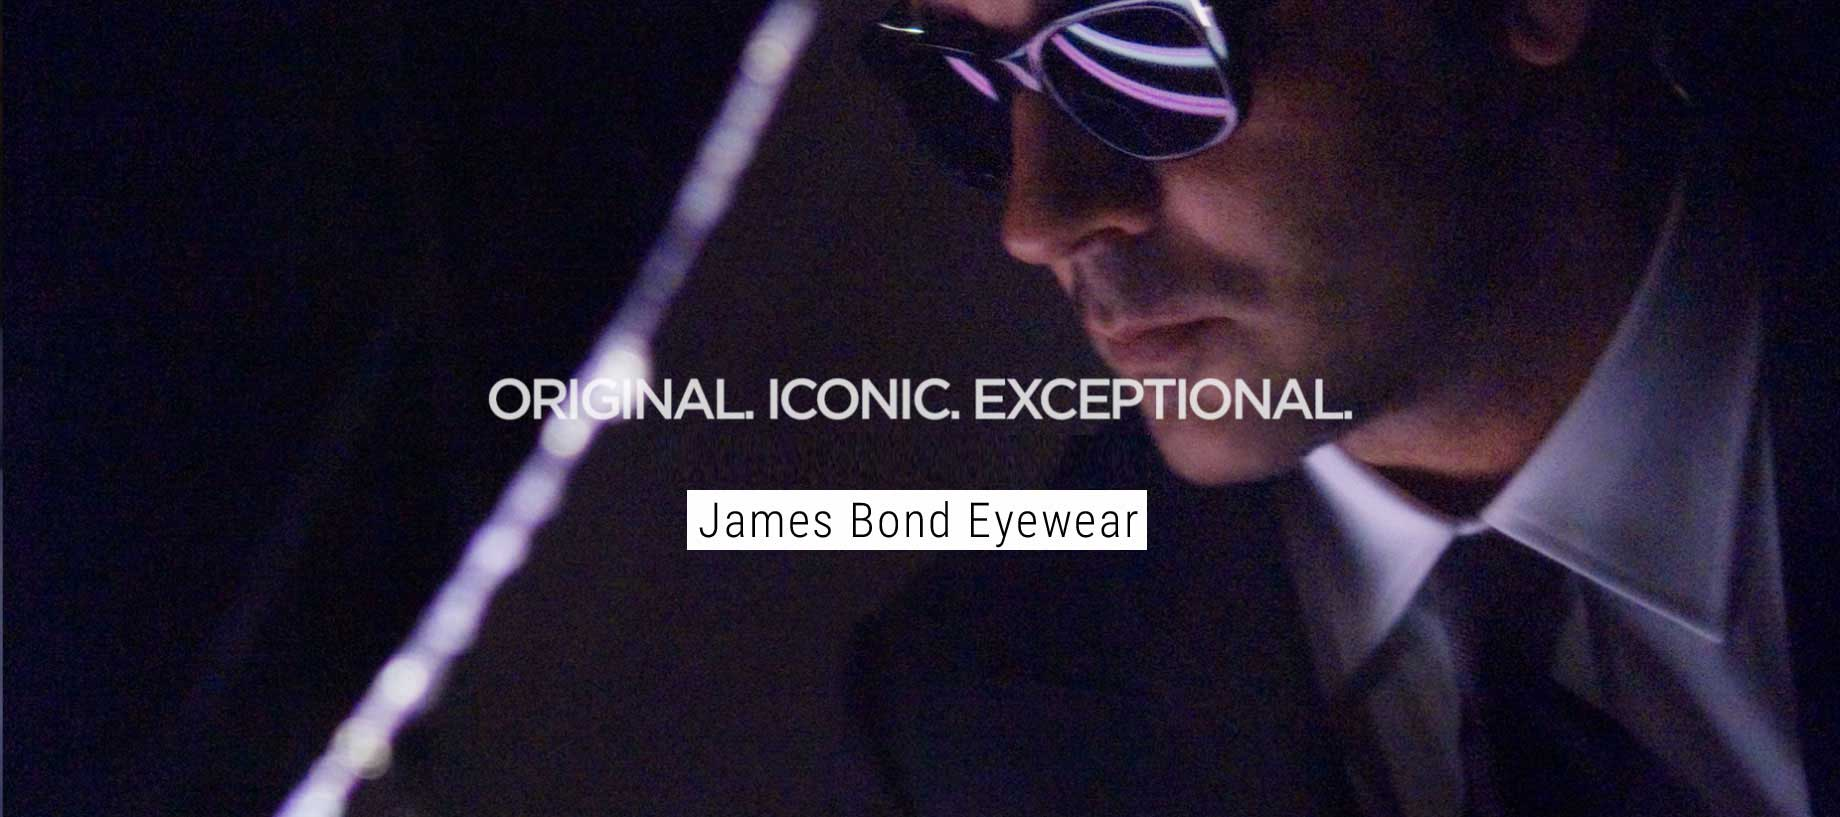 03 tom ford slider james bond eyewear optik kaepernick wiesbaden 1840x817v2